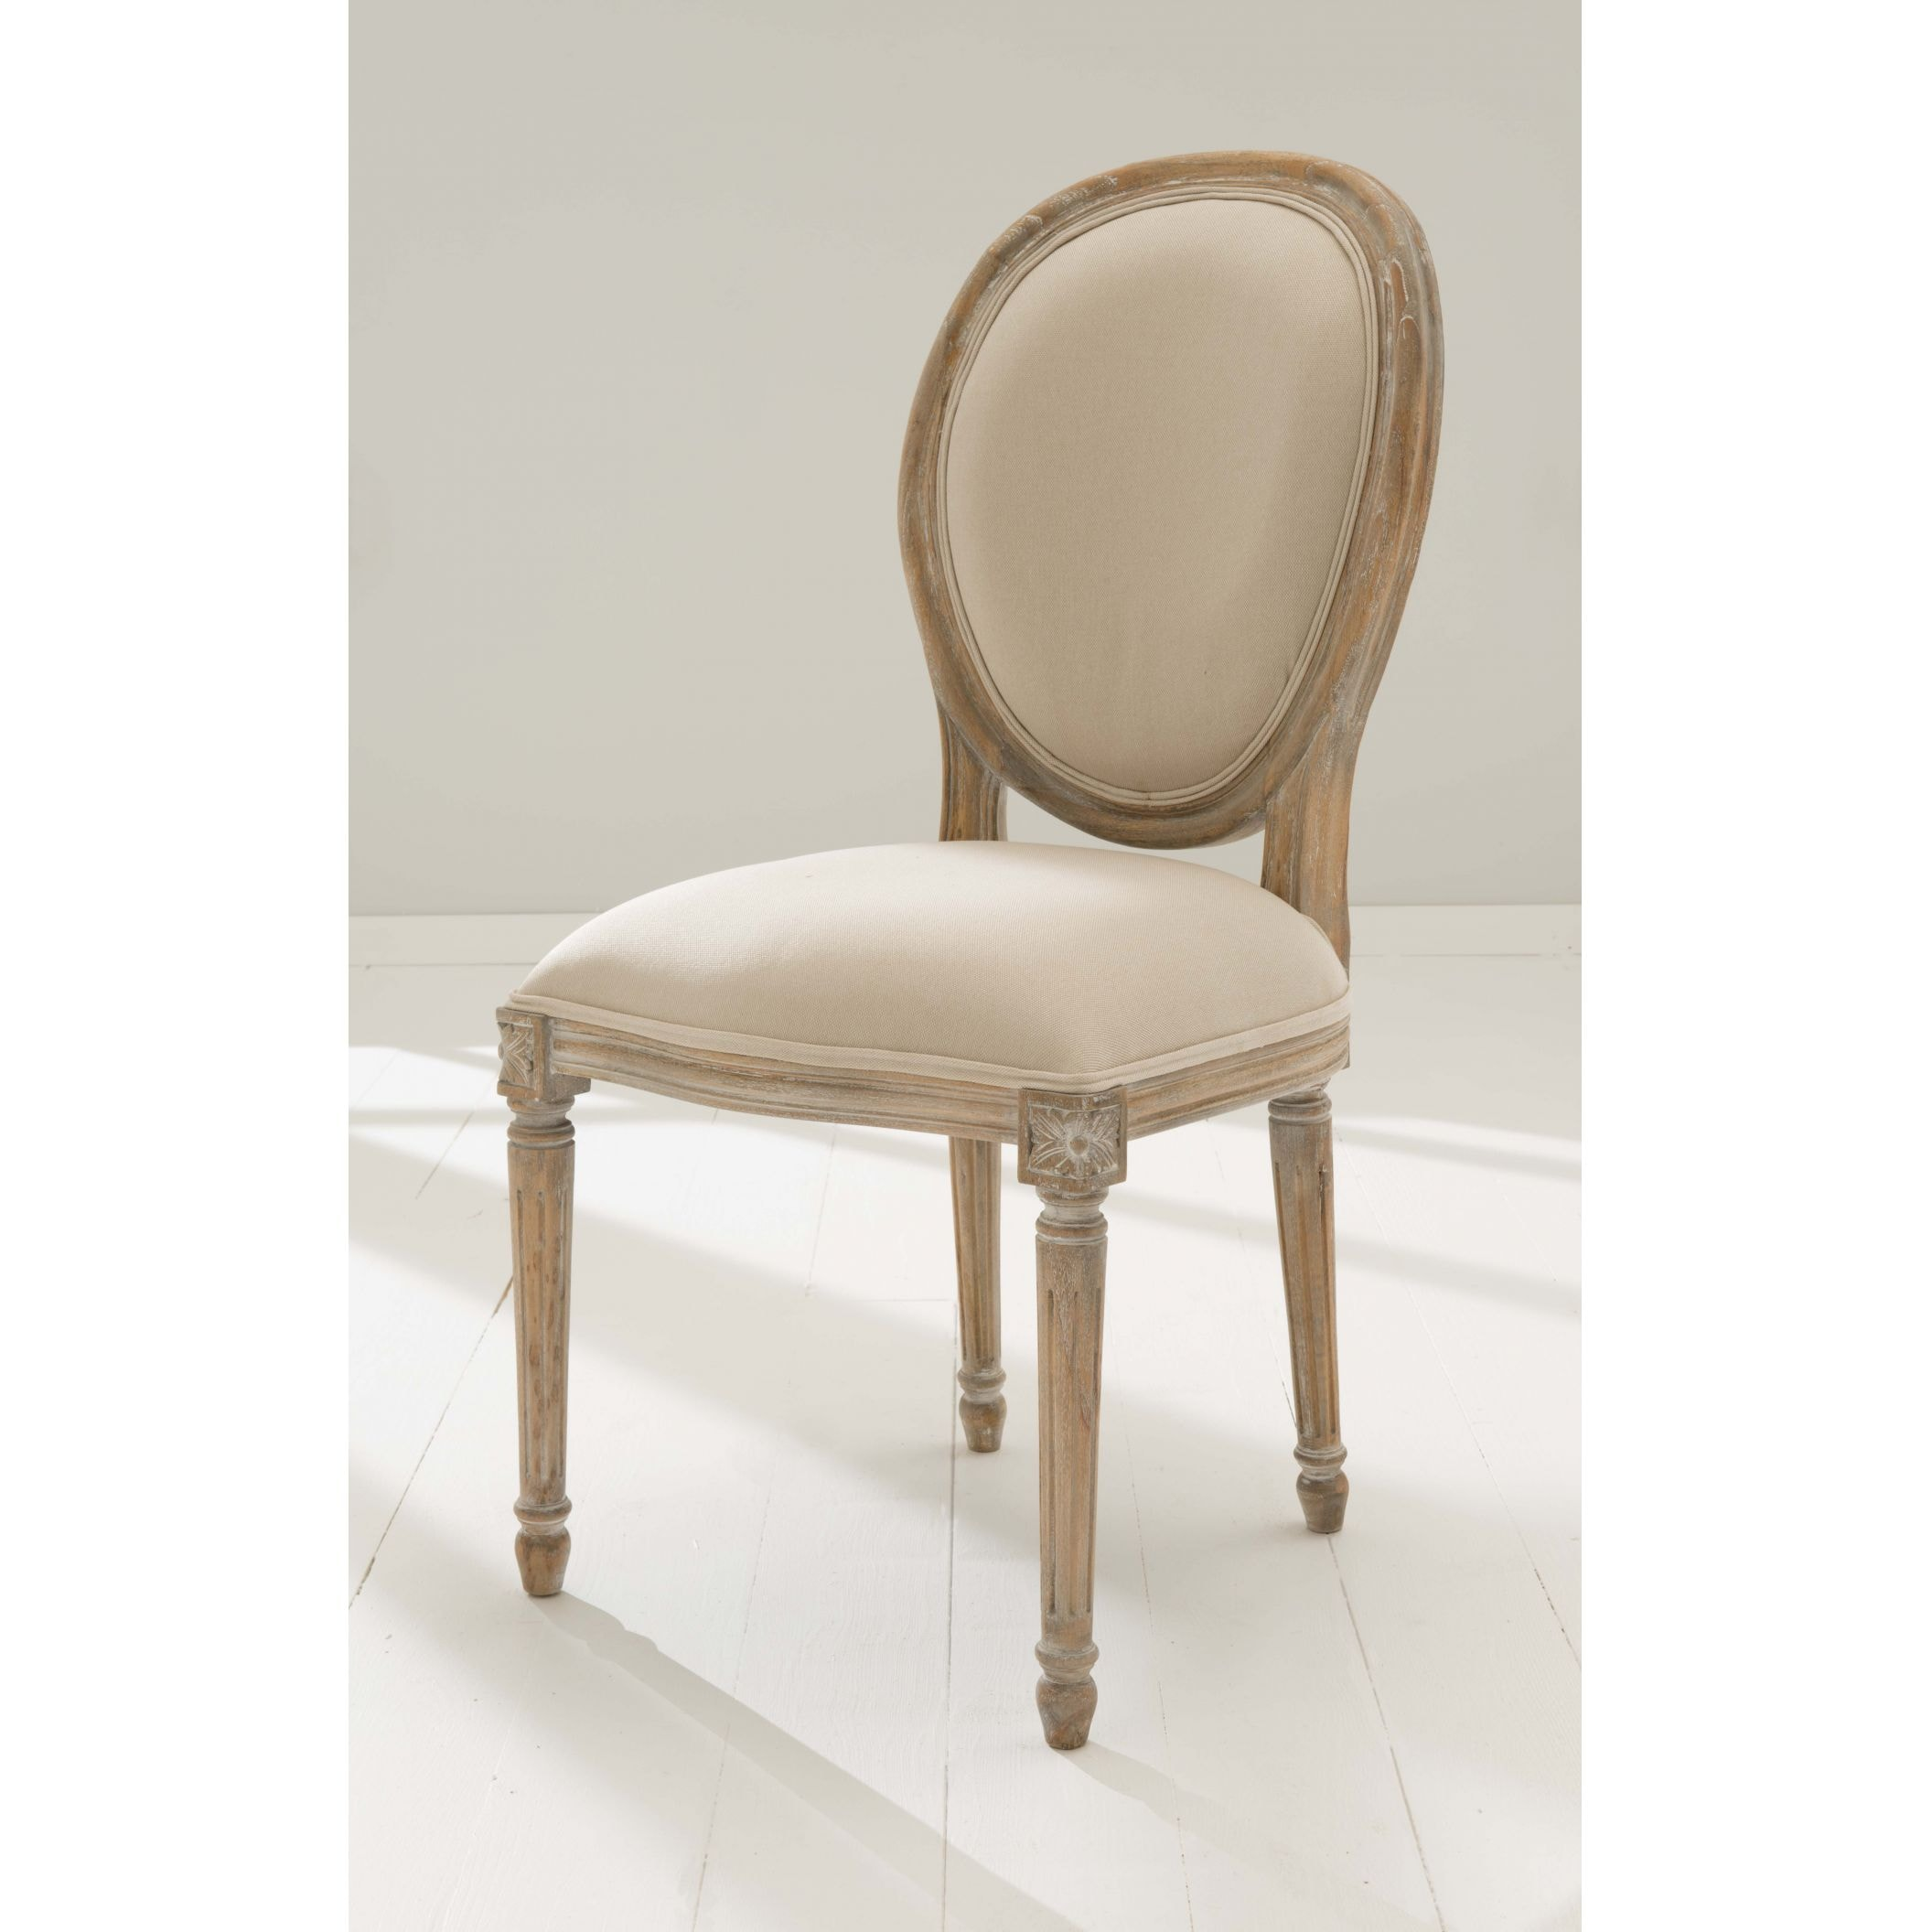 Antique French Style Mindi Chair